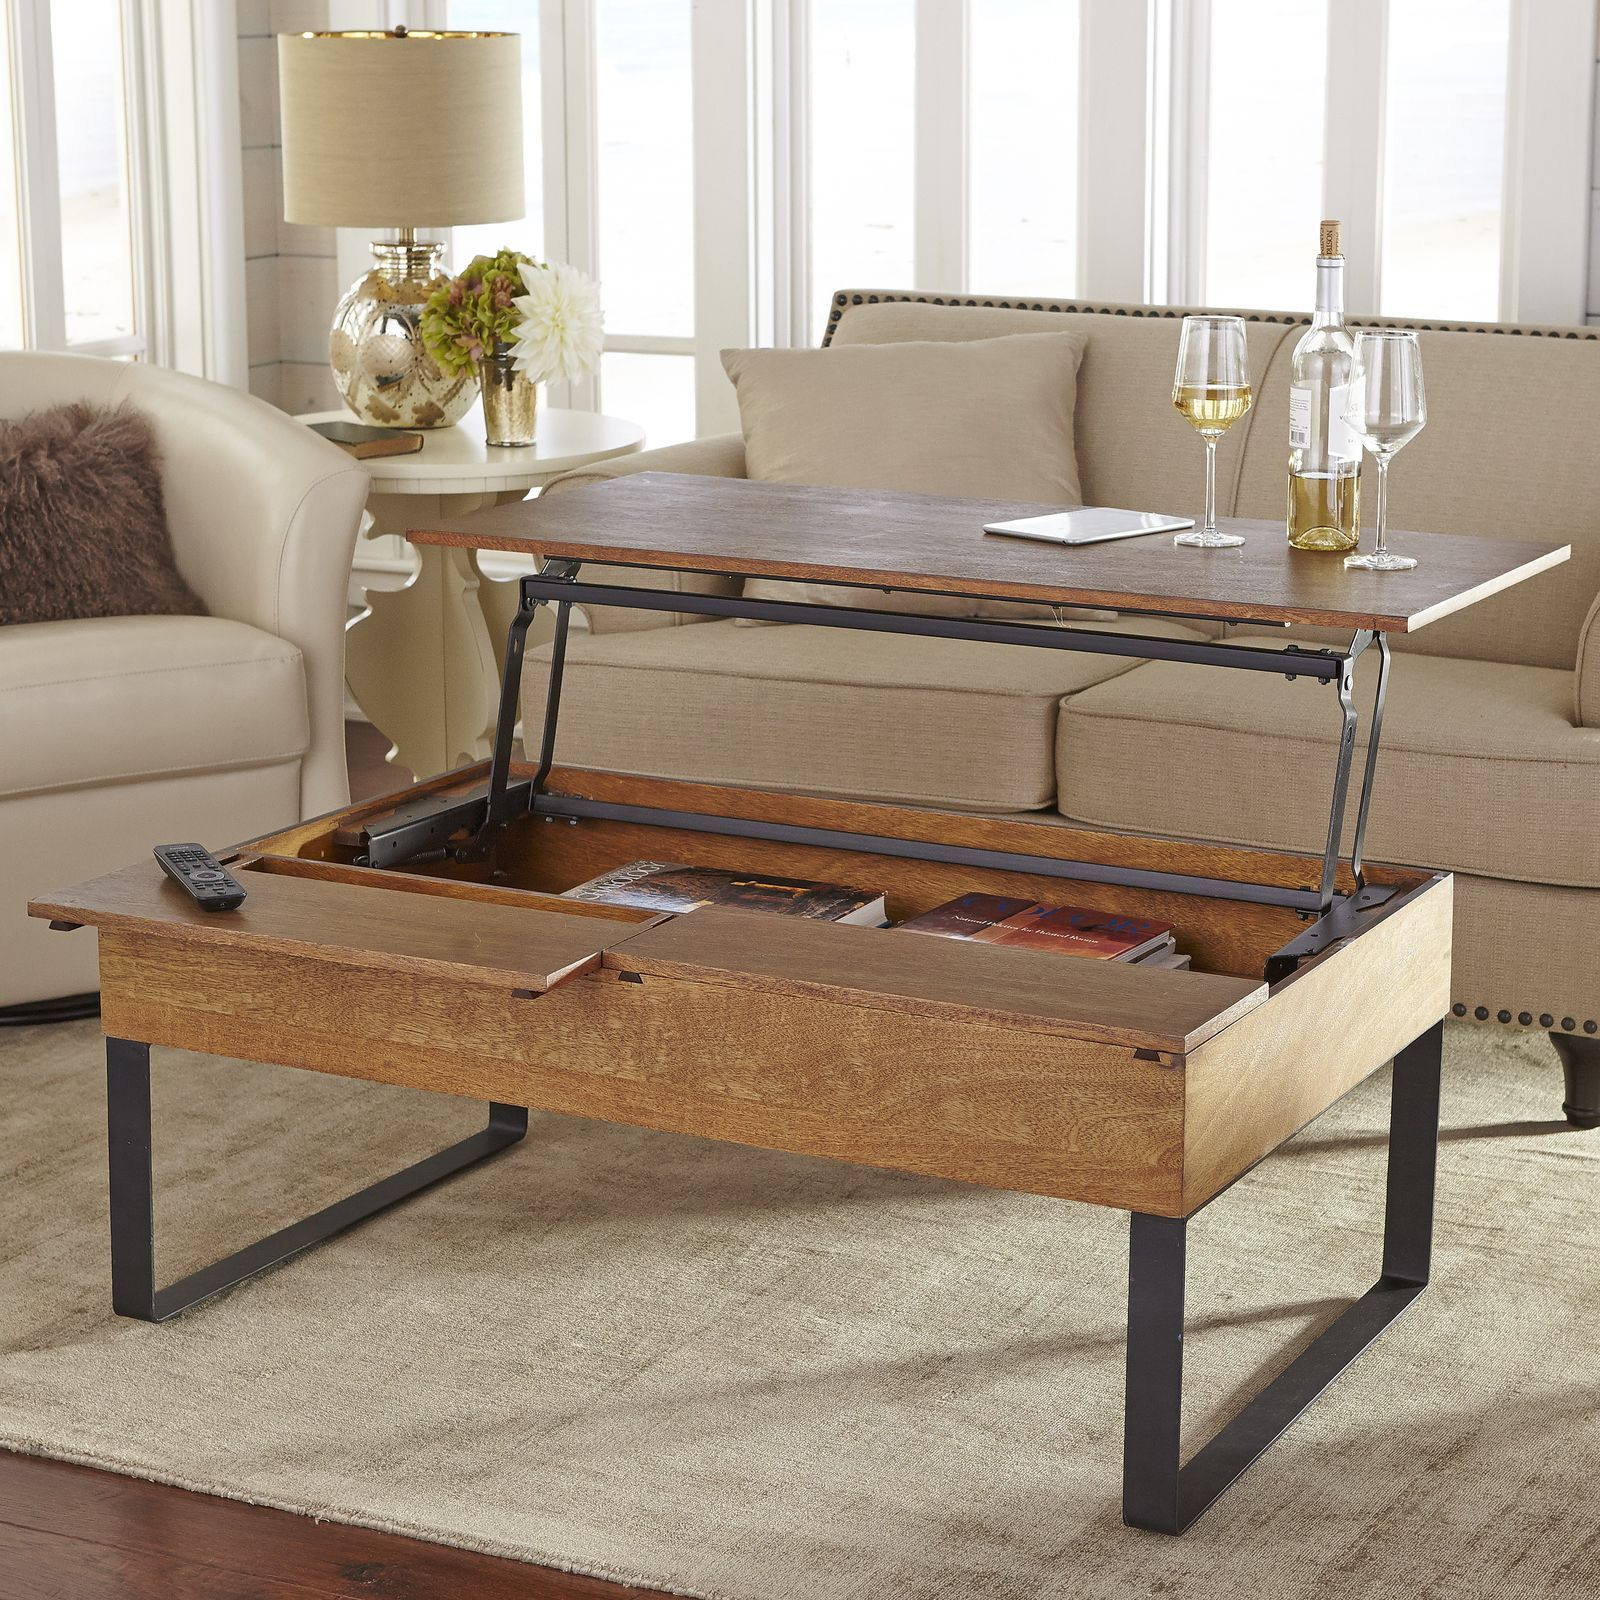 Lift Top Coffee Table New in Image of Collection